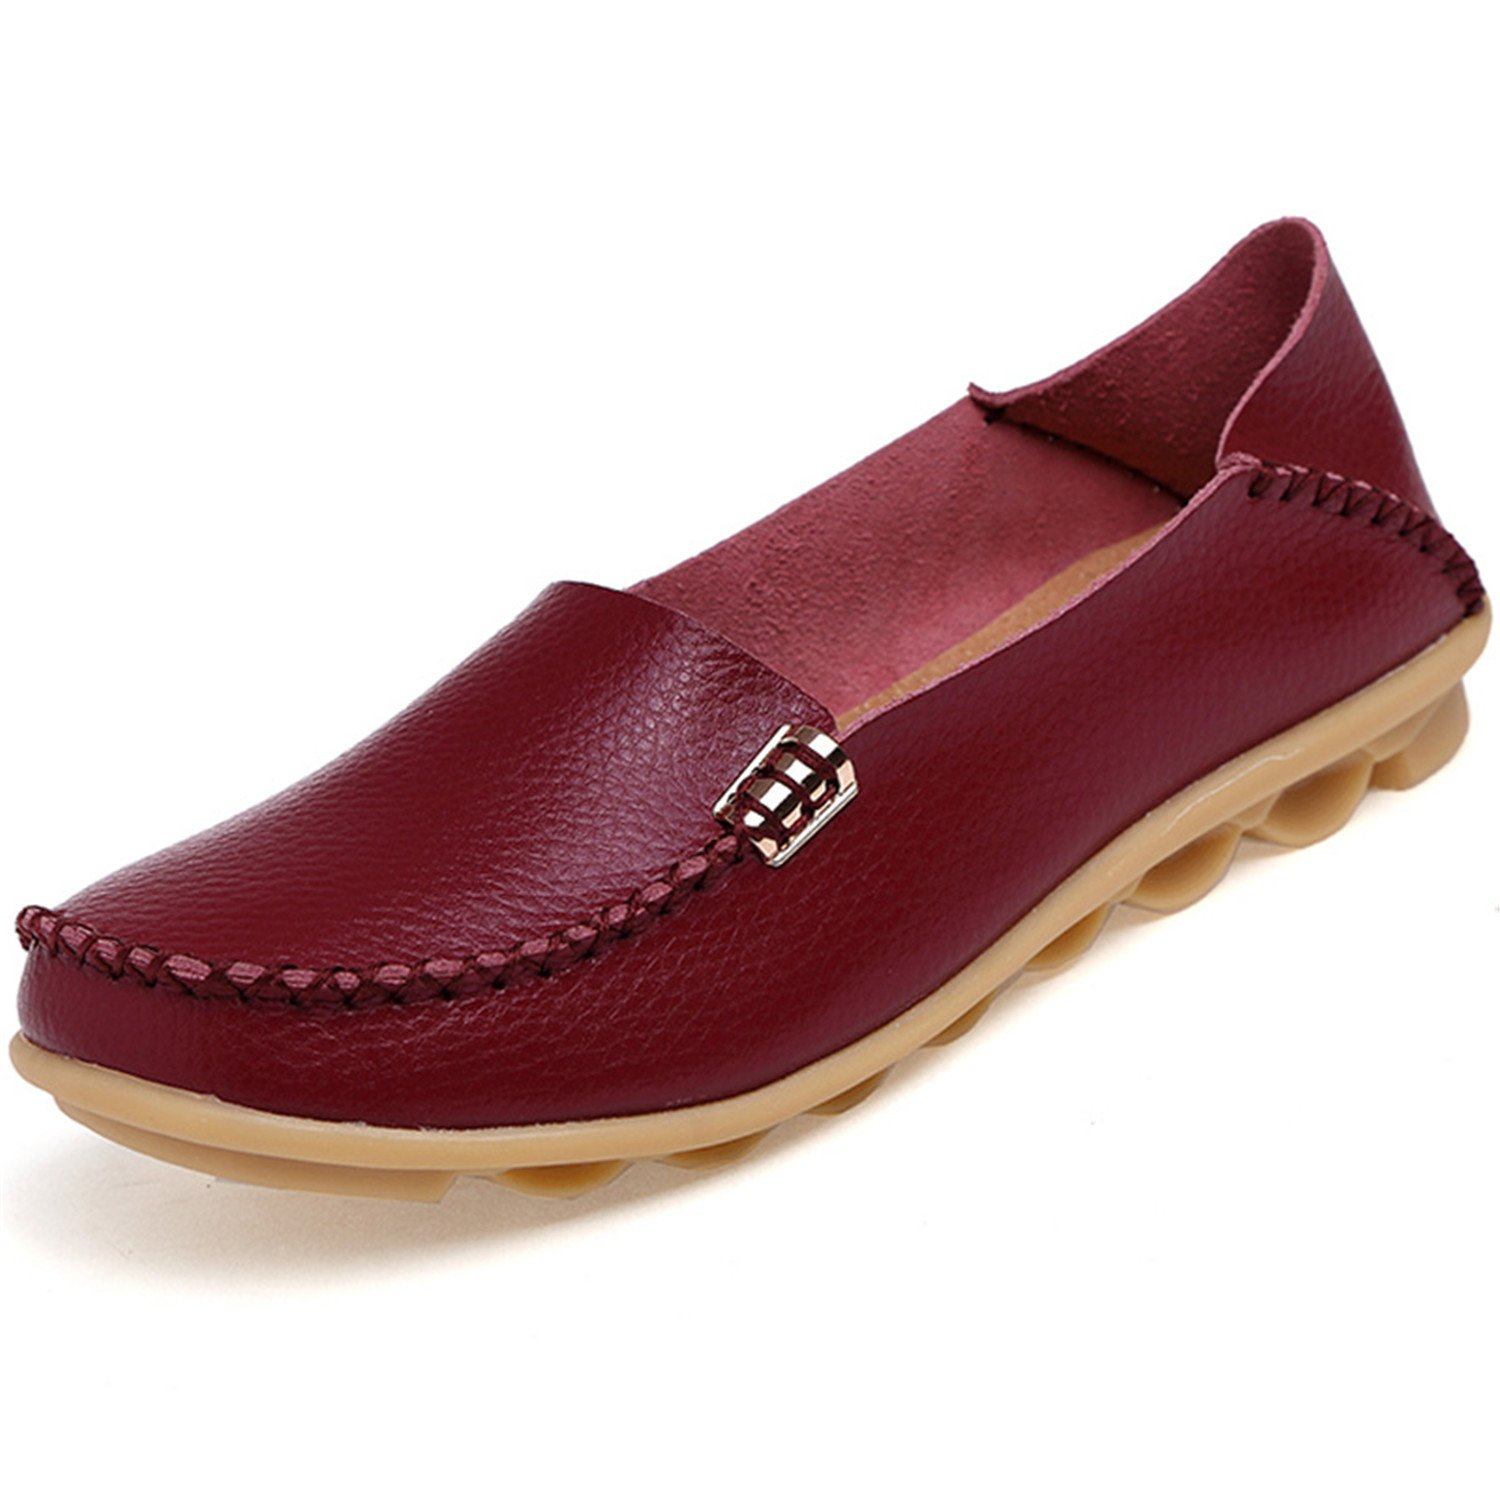 Beststore VAO Summer Candy Colors Genuine Leather Women Casual Shoes New Fashion Breathable Slip-On Peas Massage Flat Shoes Plus Size 35-44 B078FSDGX8 5 B(M) US|Wine